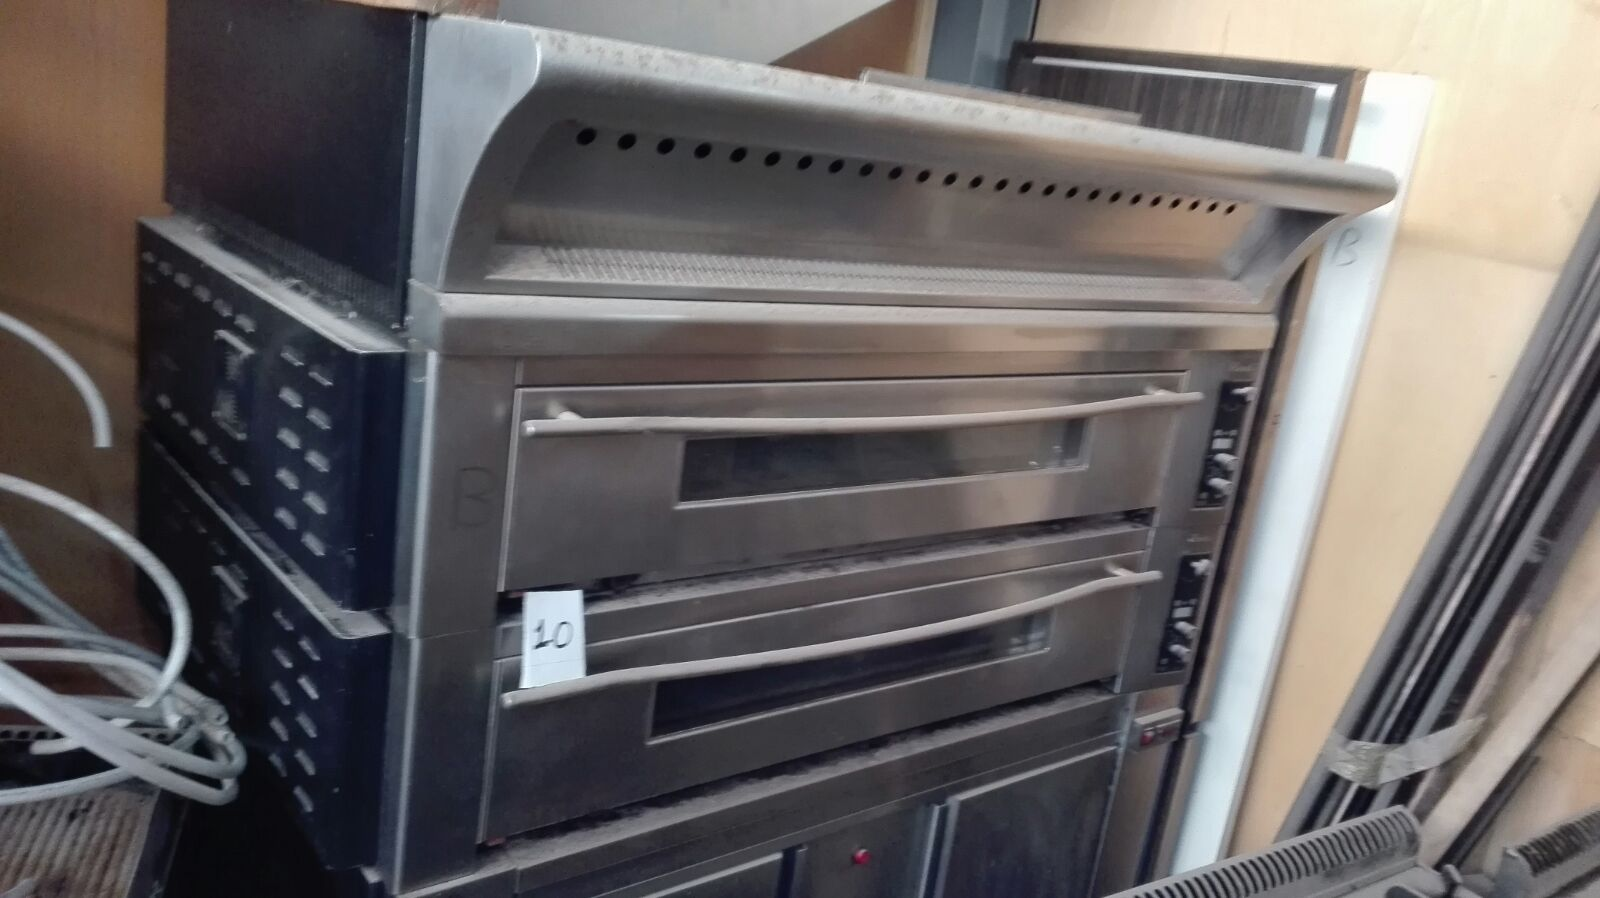 N. 1 FORNO PIZZERIA A 2 CAMERE